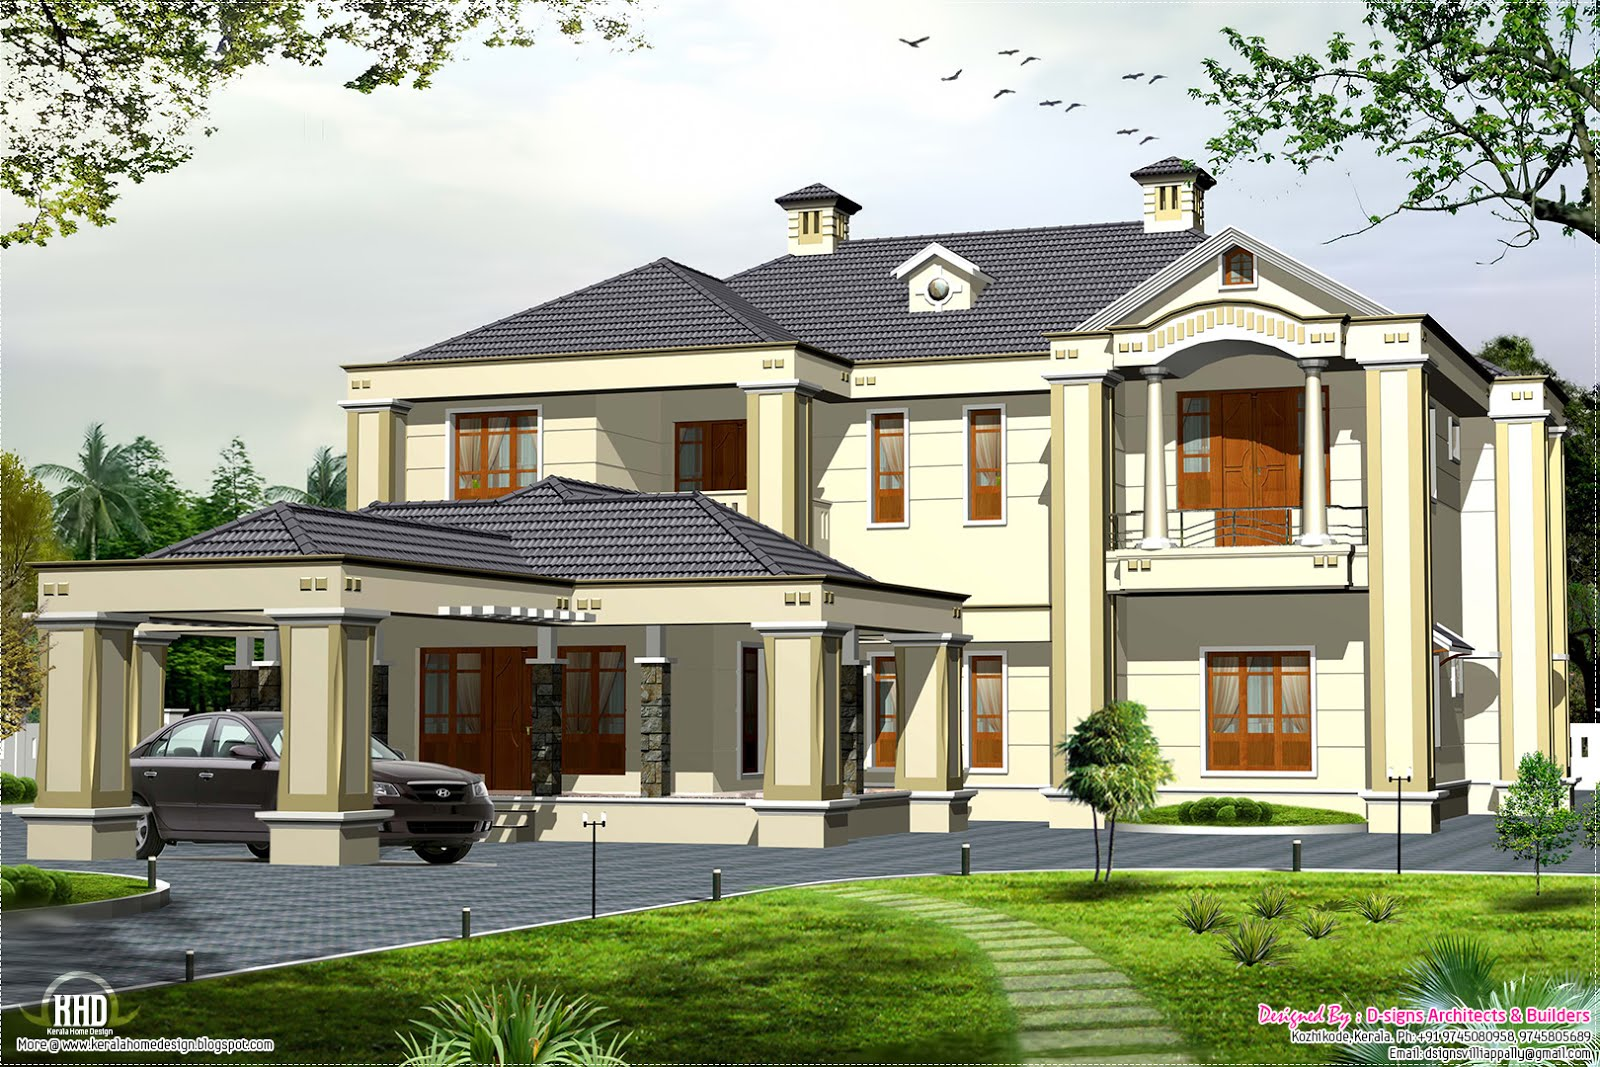 Colonial style 5 bedroom victorian style house enter your blog name